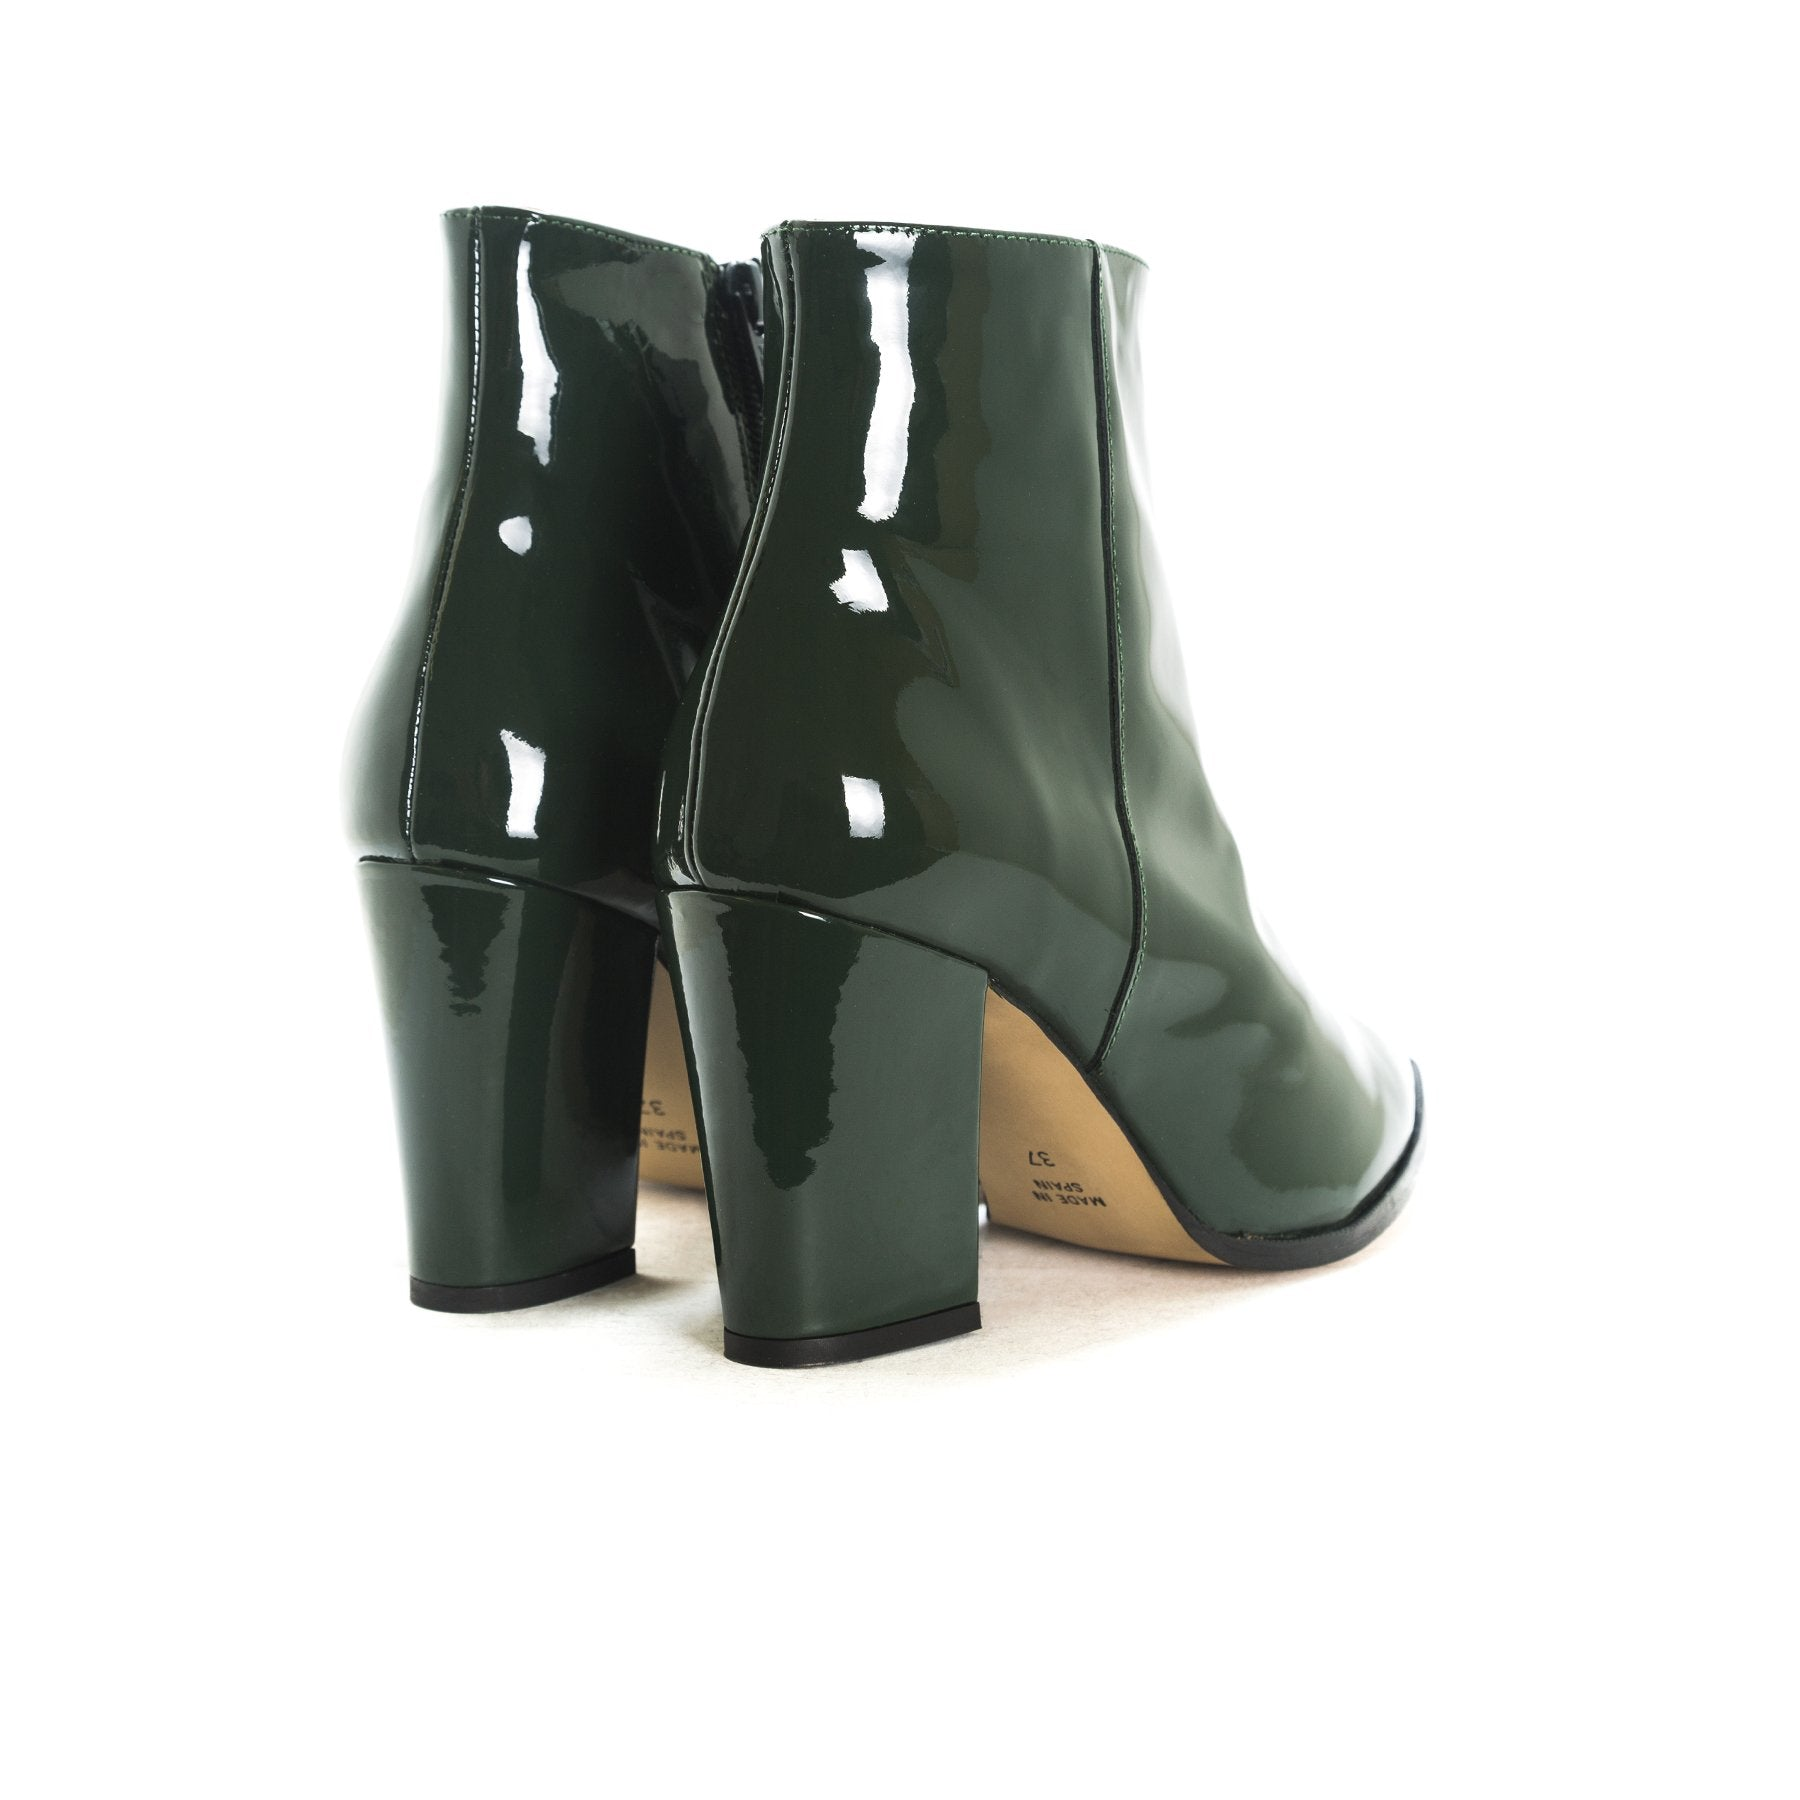 Merco Green Patent Boots